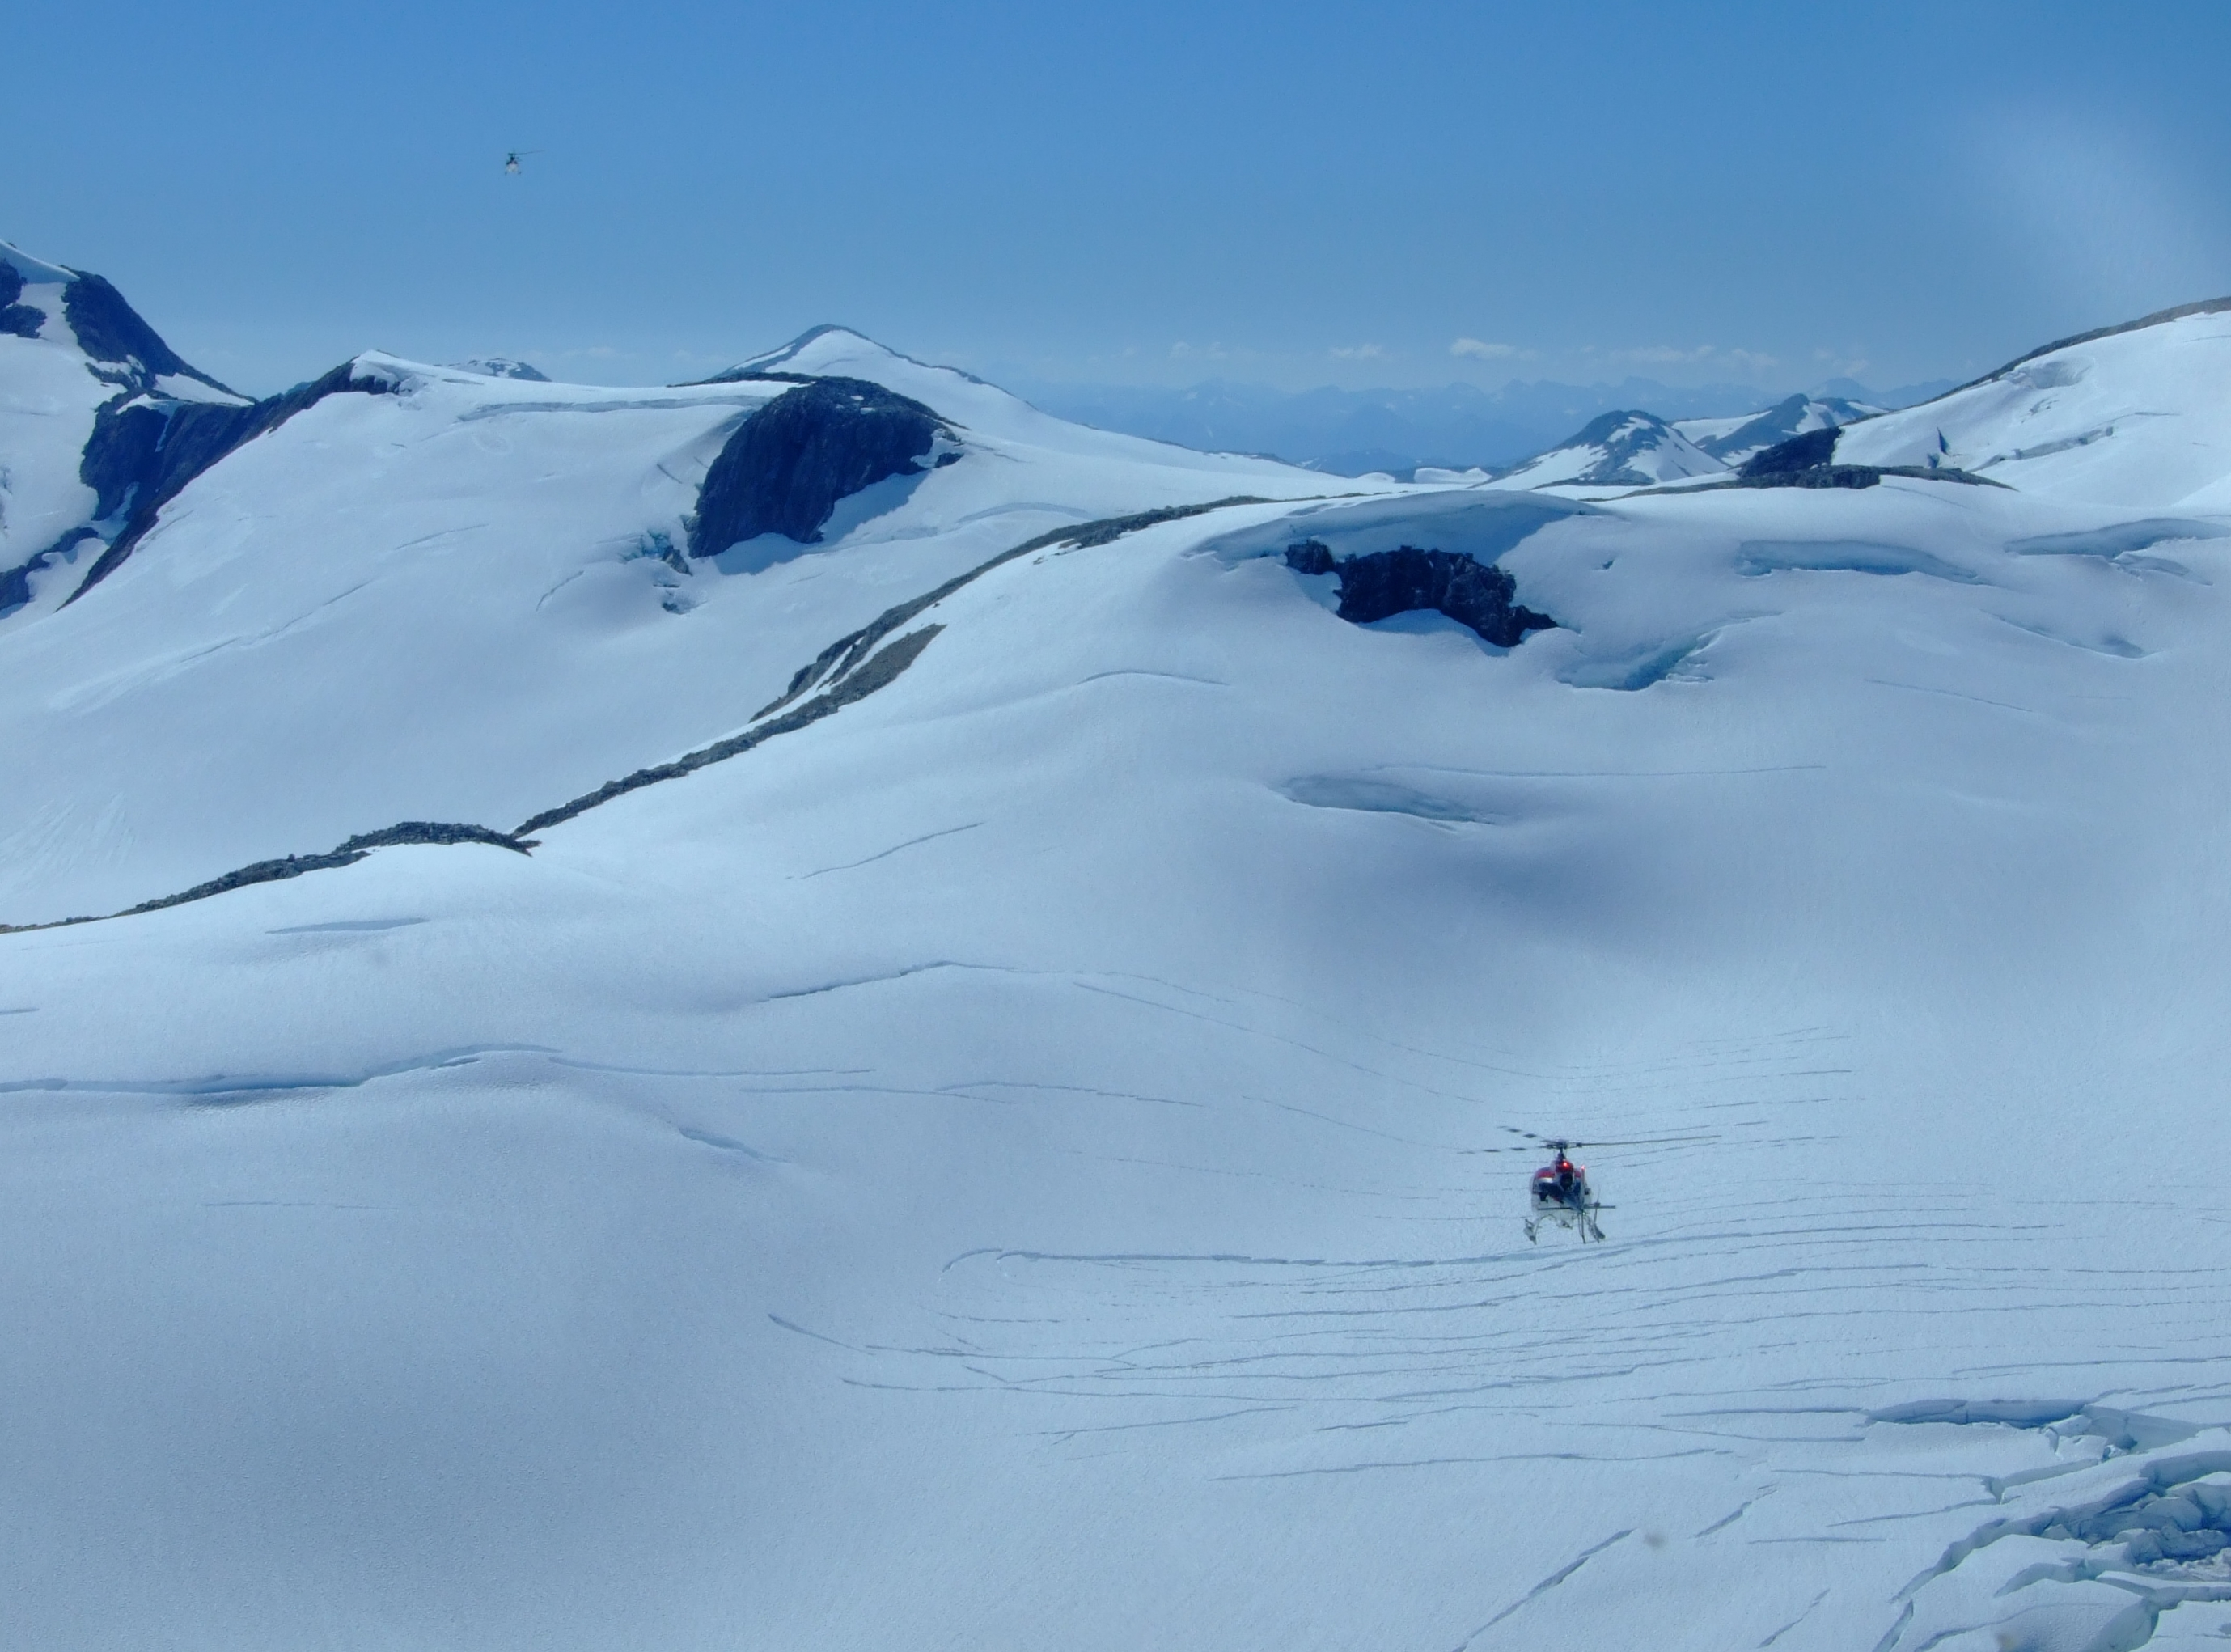 The Juneau Icefield with Era Helicopters